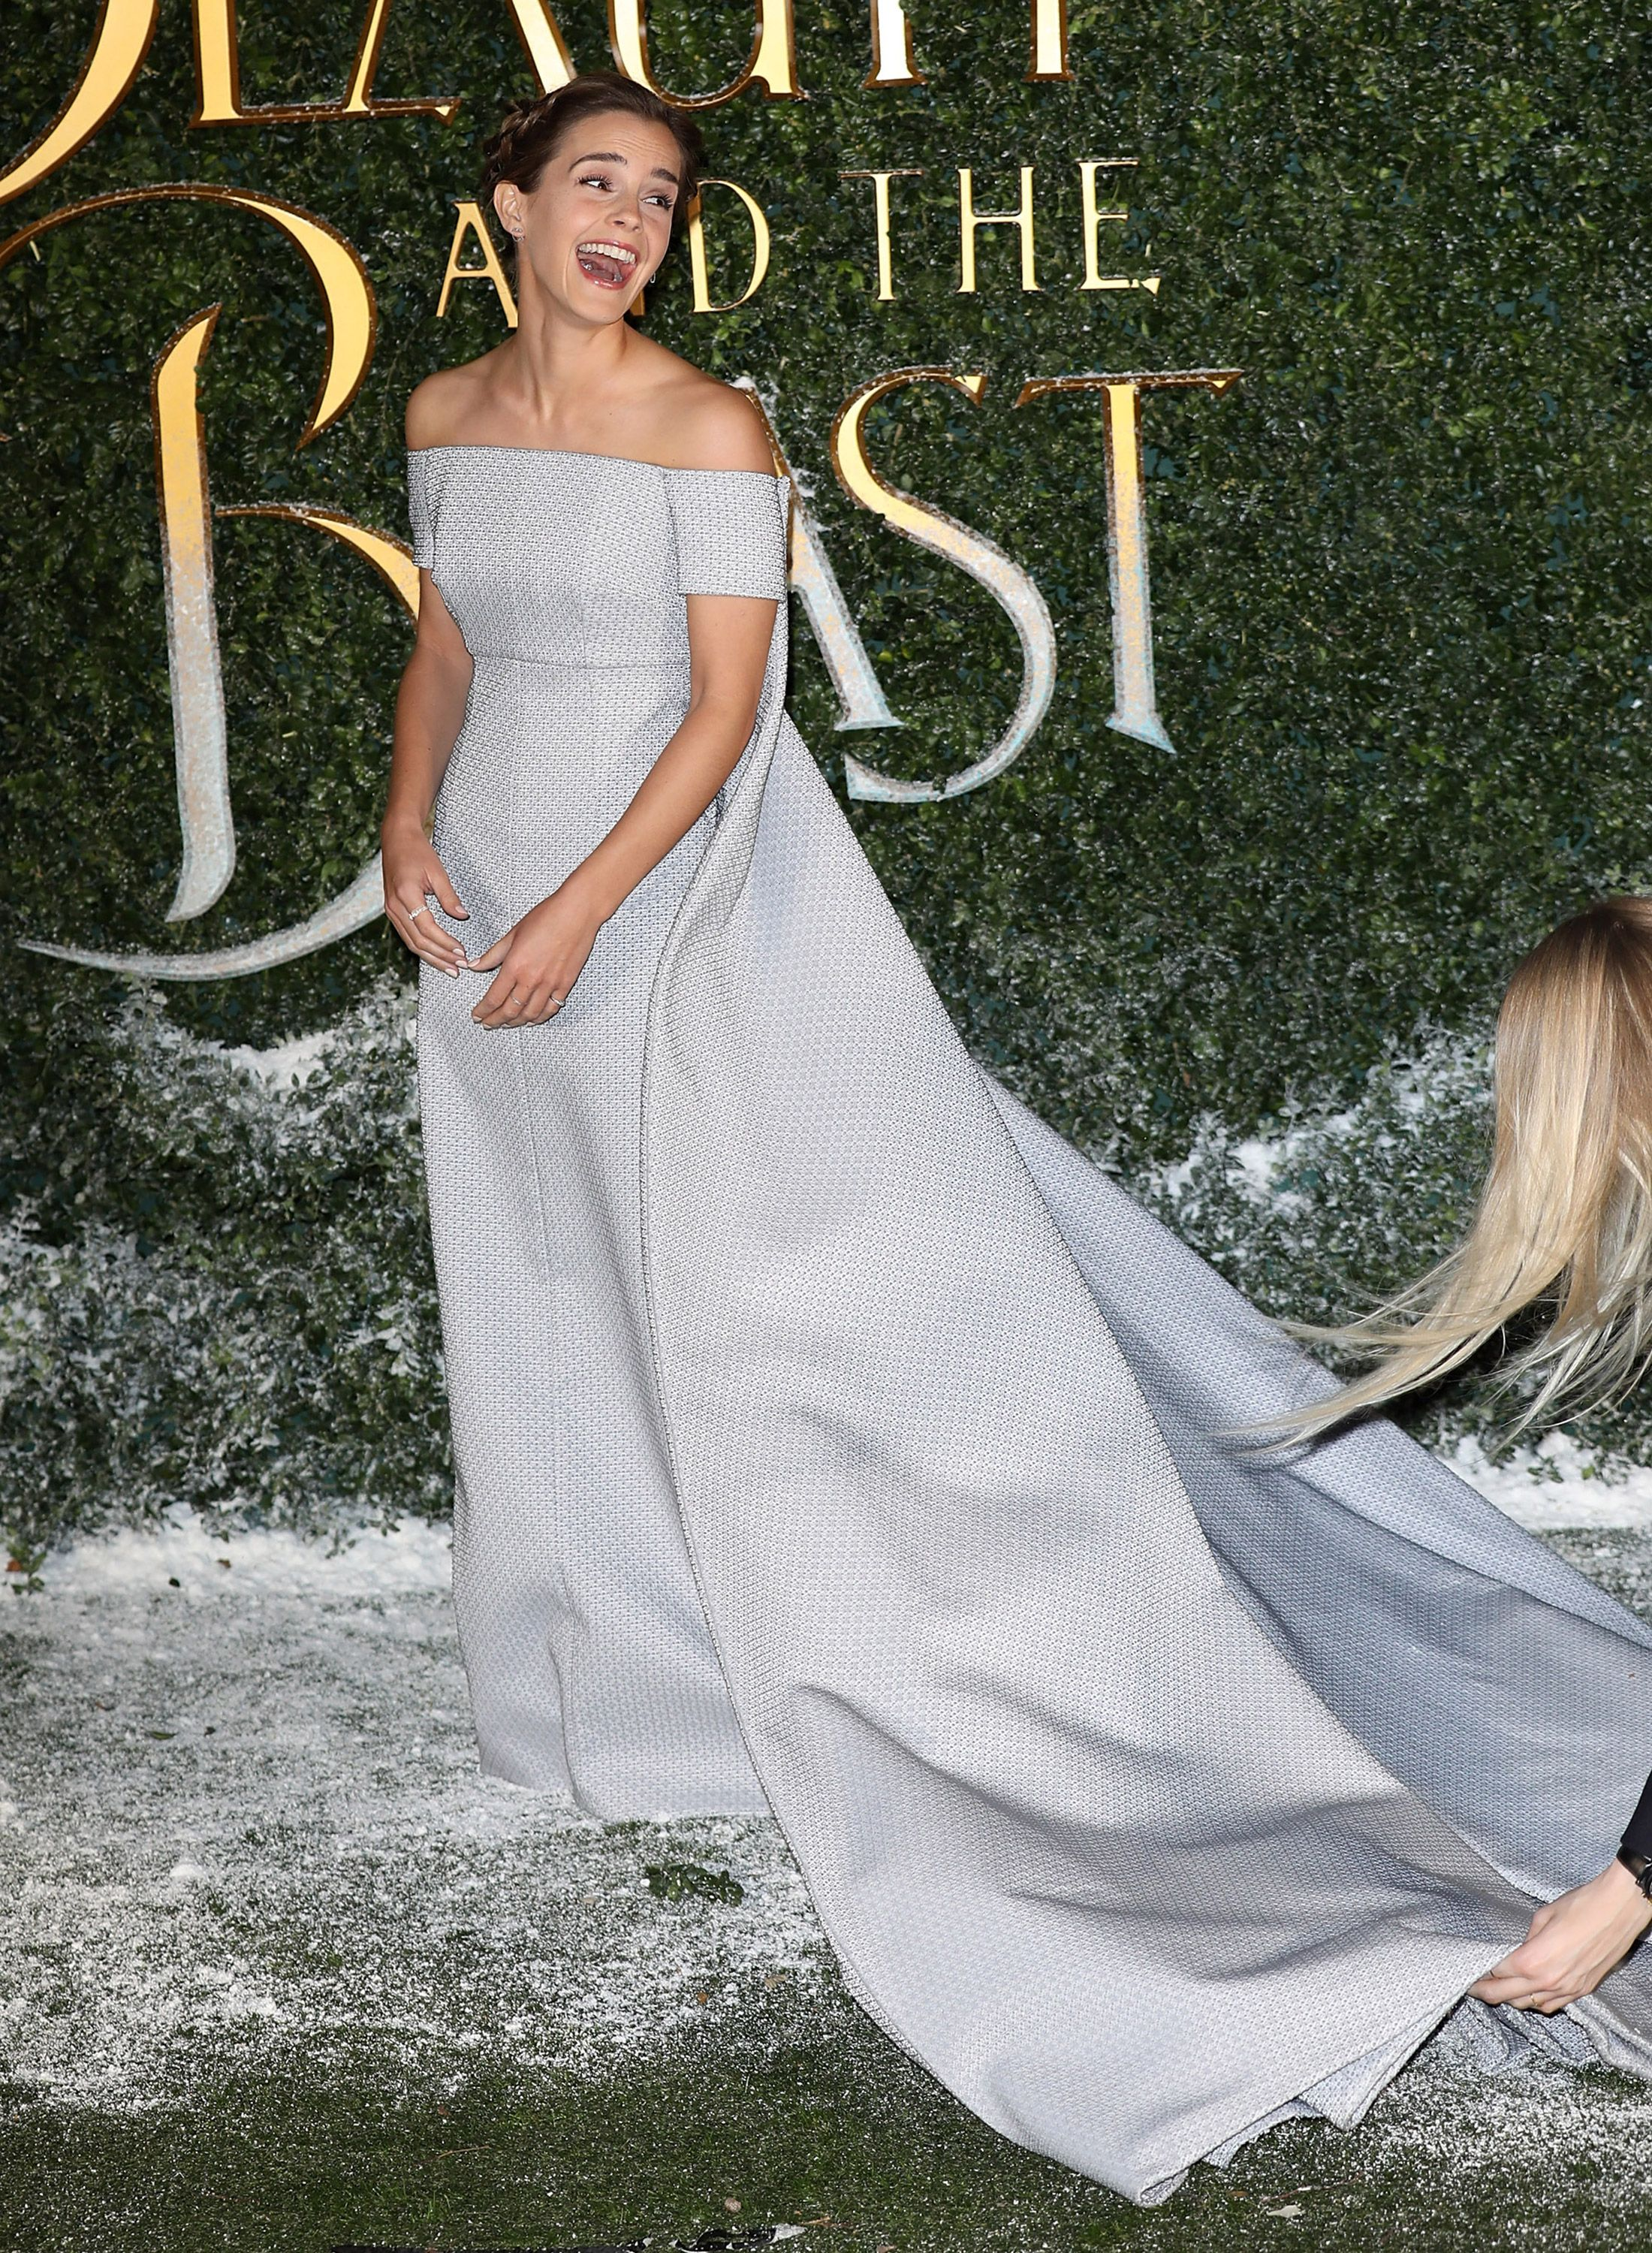 All the photos of Emma Watson on her \'Beauty and the Beast\' press tour